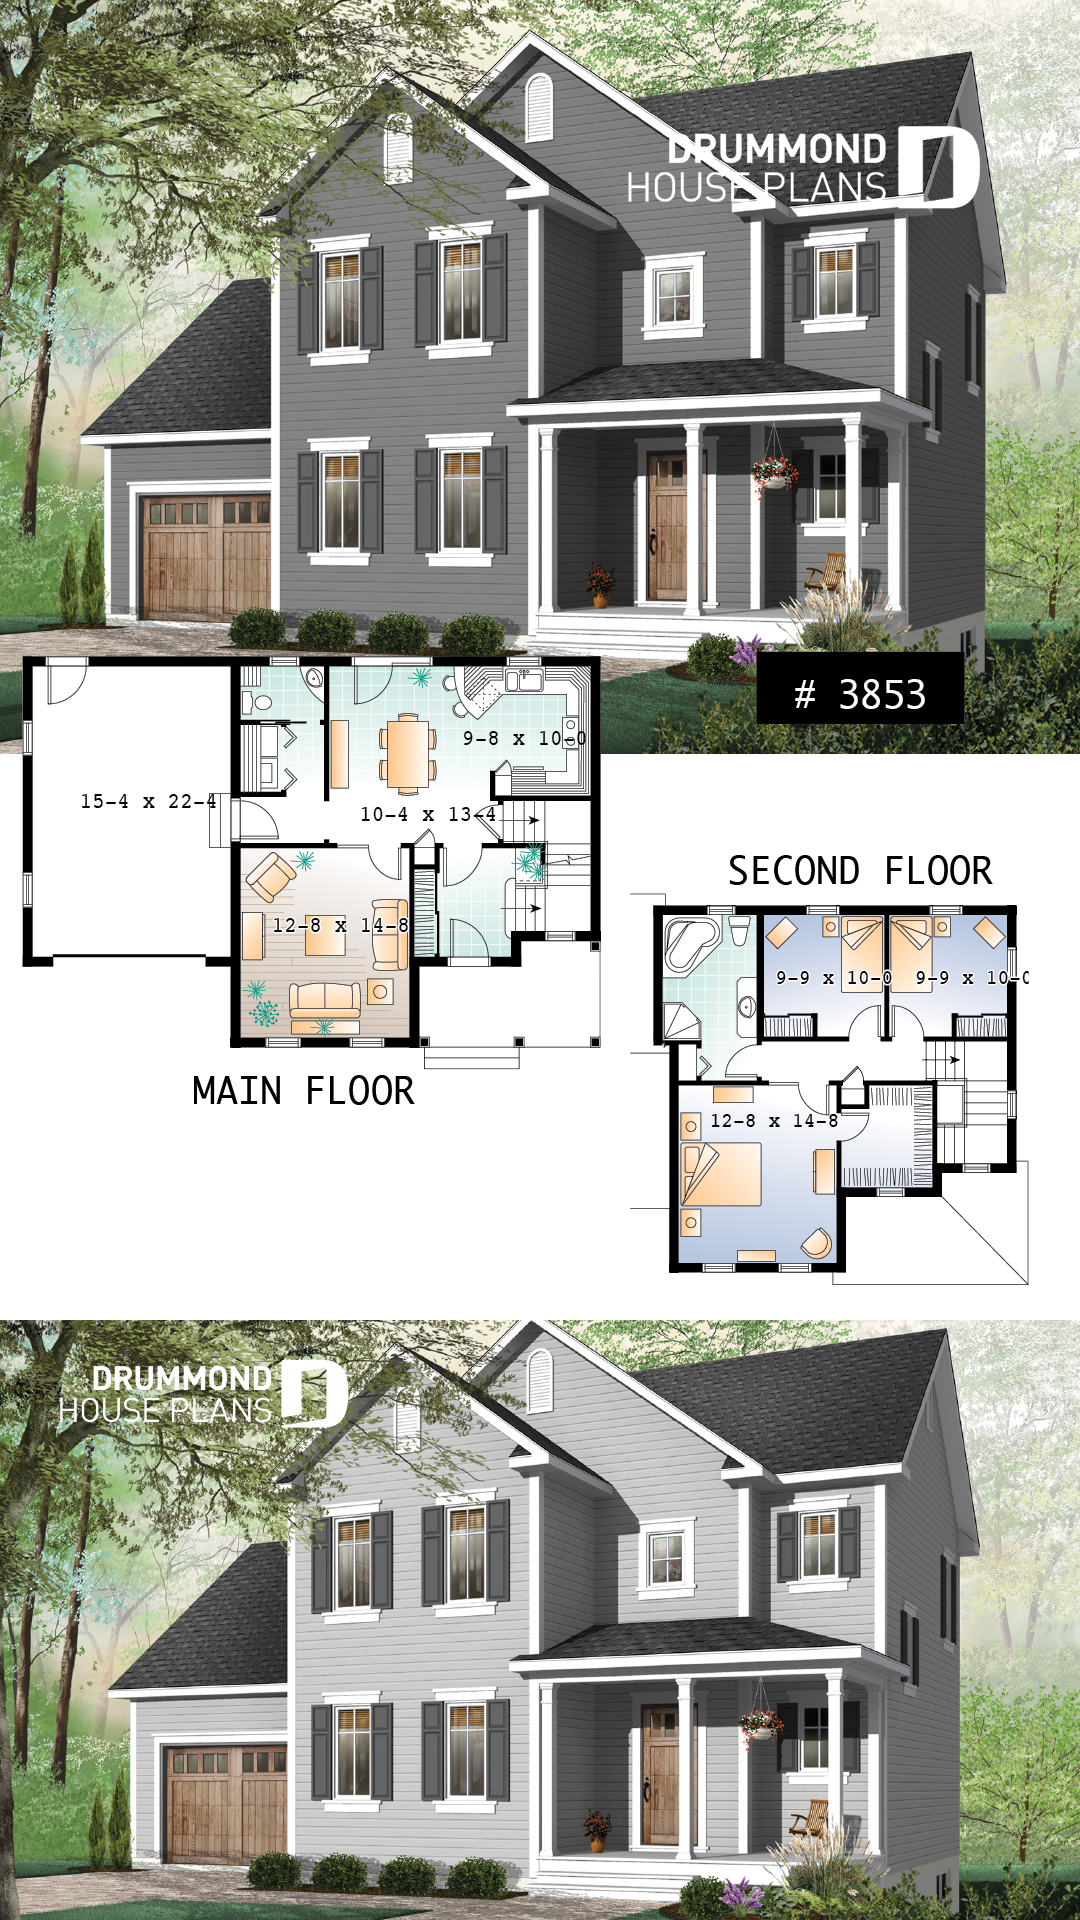 Small Simple Two Storey Home Three Bedrooms Large Kitchen Laundry Room On Ma Sims House Plans House Plans House Blueprints